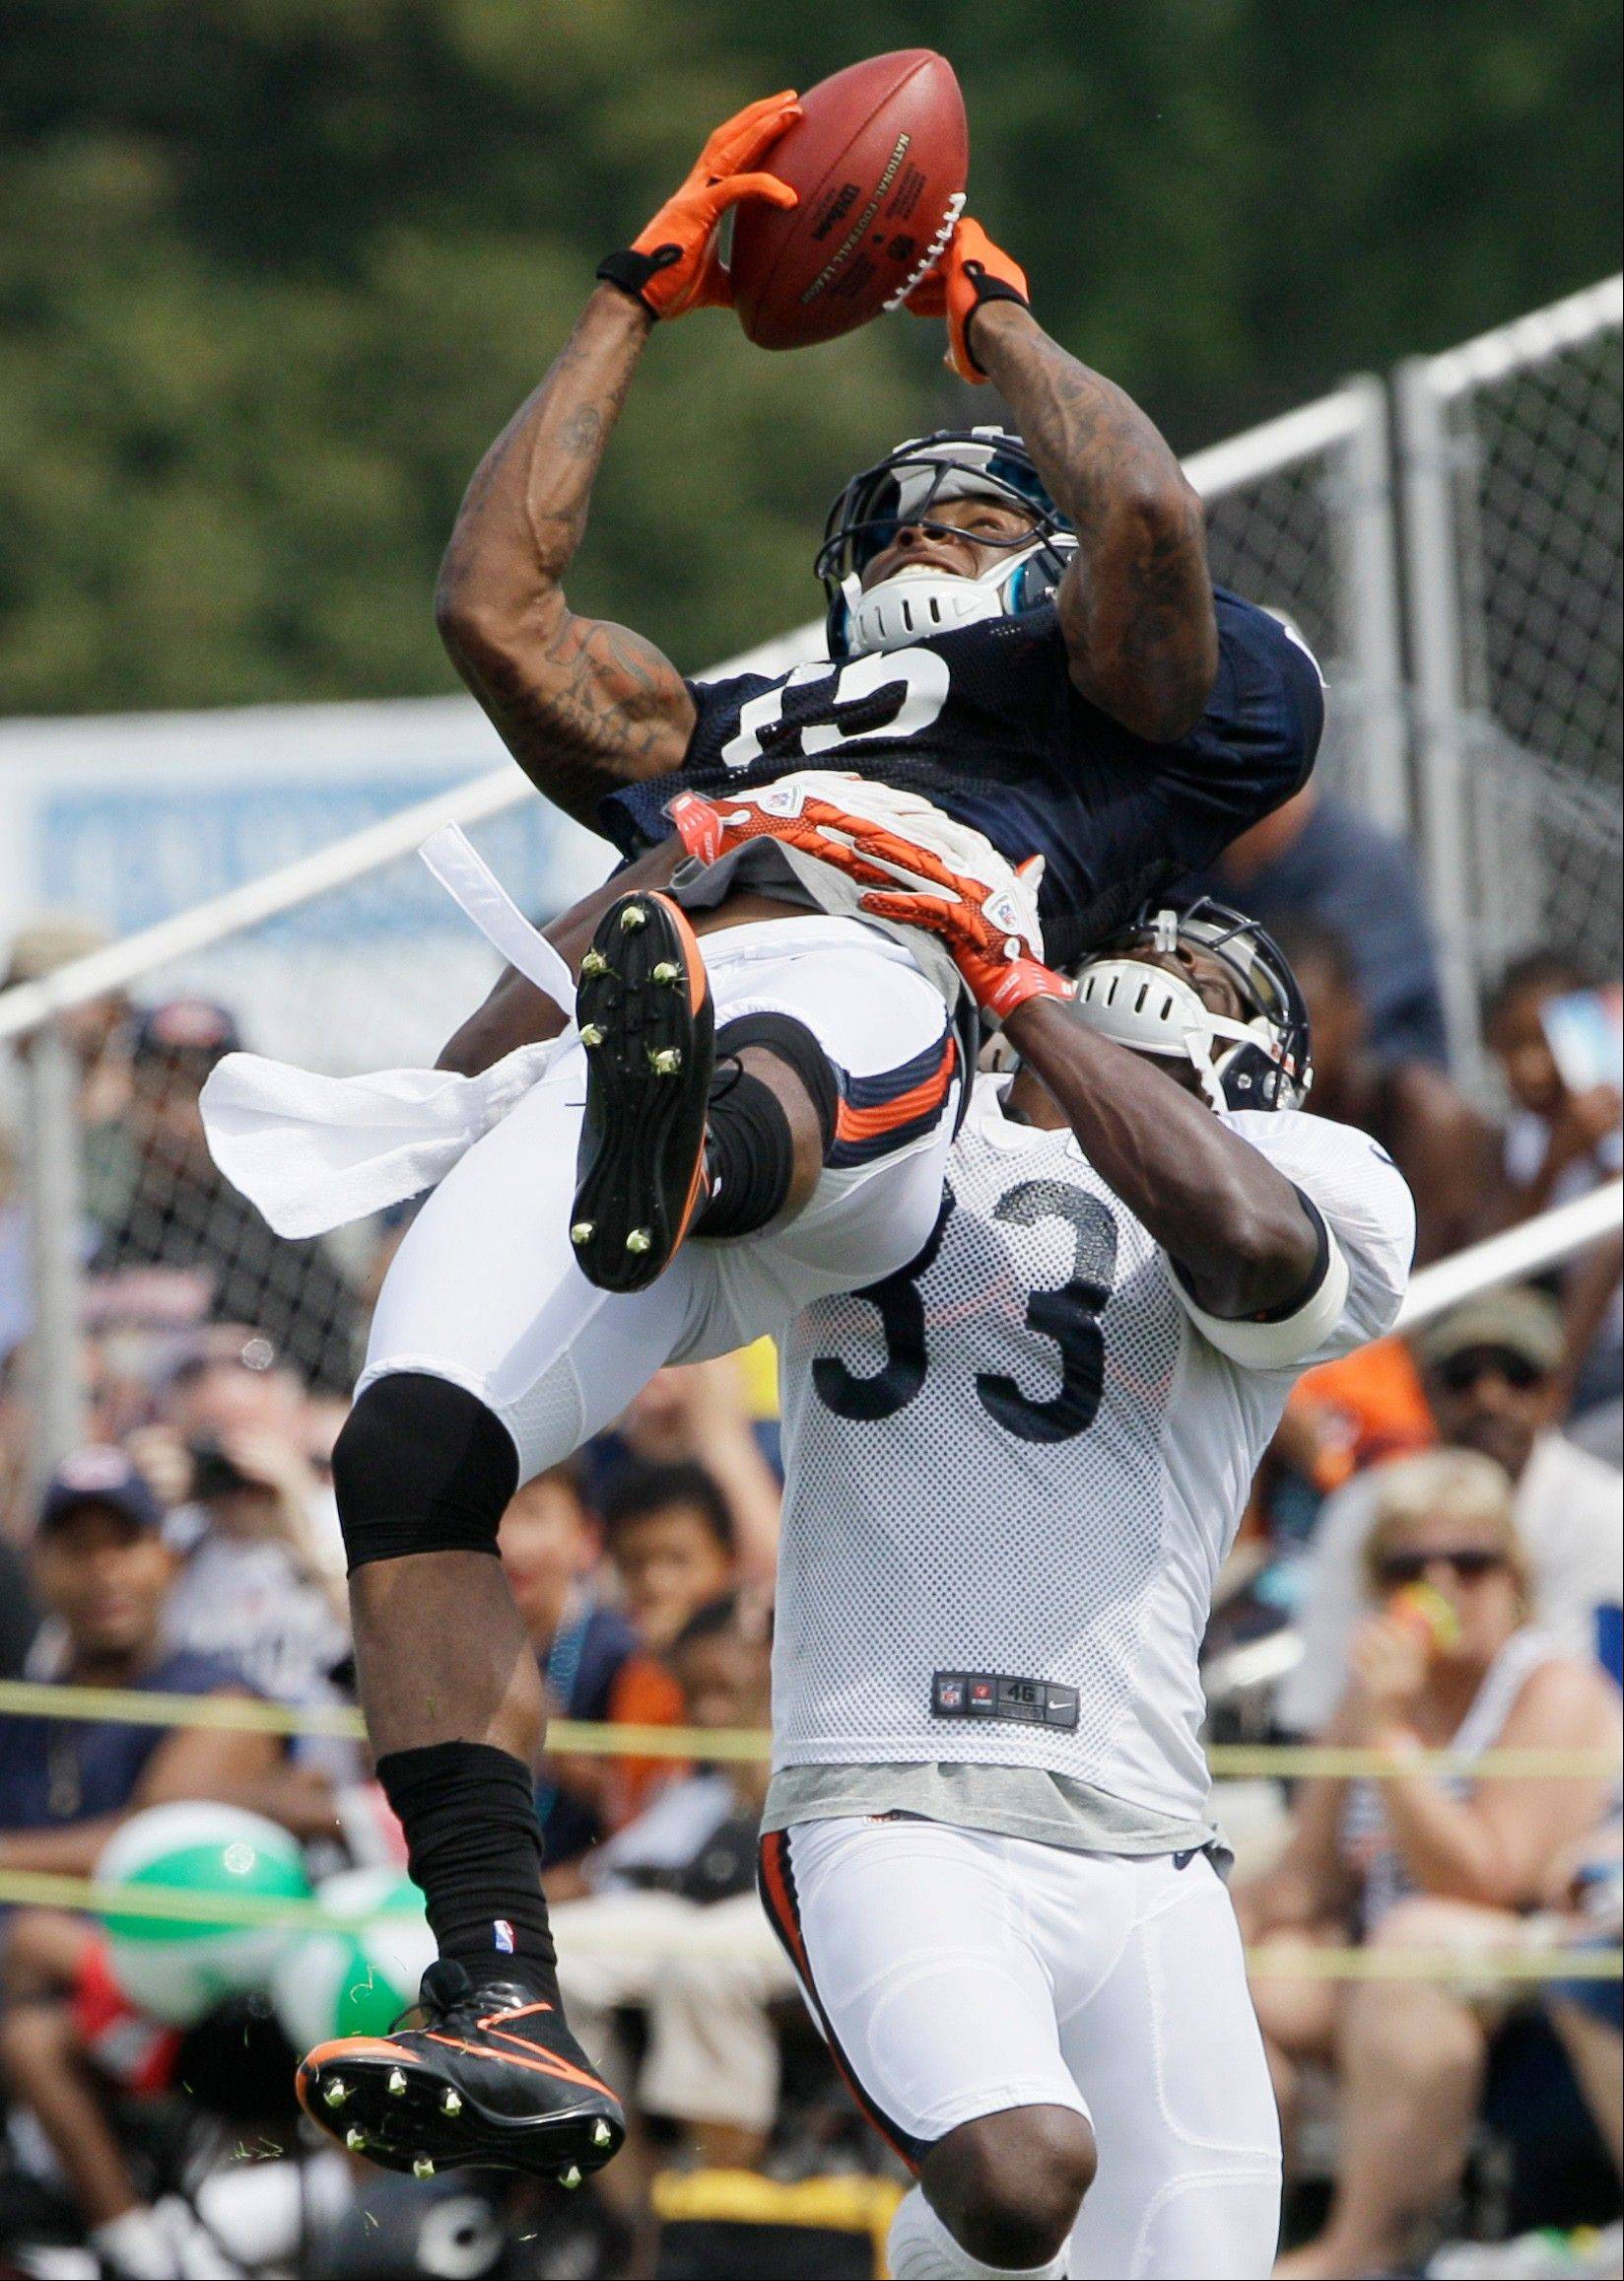 Chicago Bears wide receiver Brandon Marshall, top, catches a ball against cornerback Charles Tillman (33) during NFL football training camp at Olivet Nazarene University in Bourbonnais, Ill., Sunday, July 29, 2012.